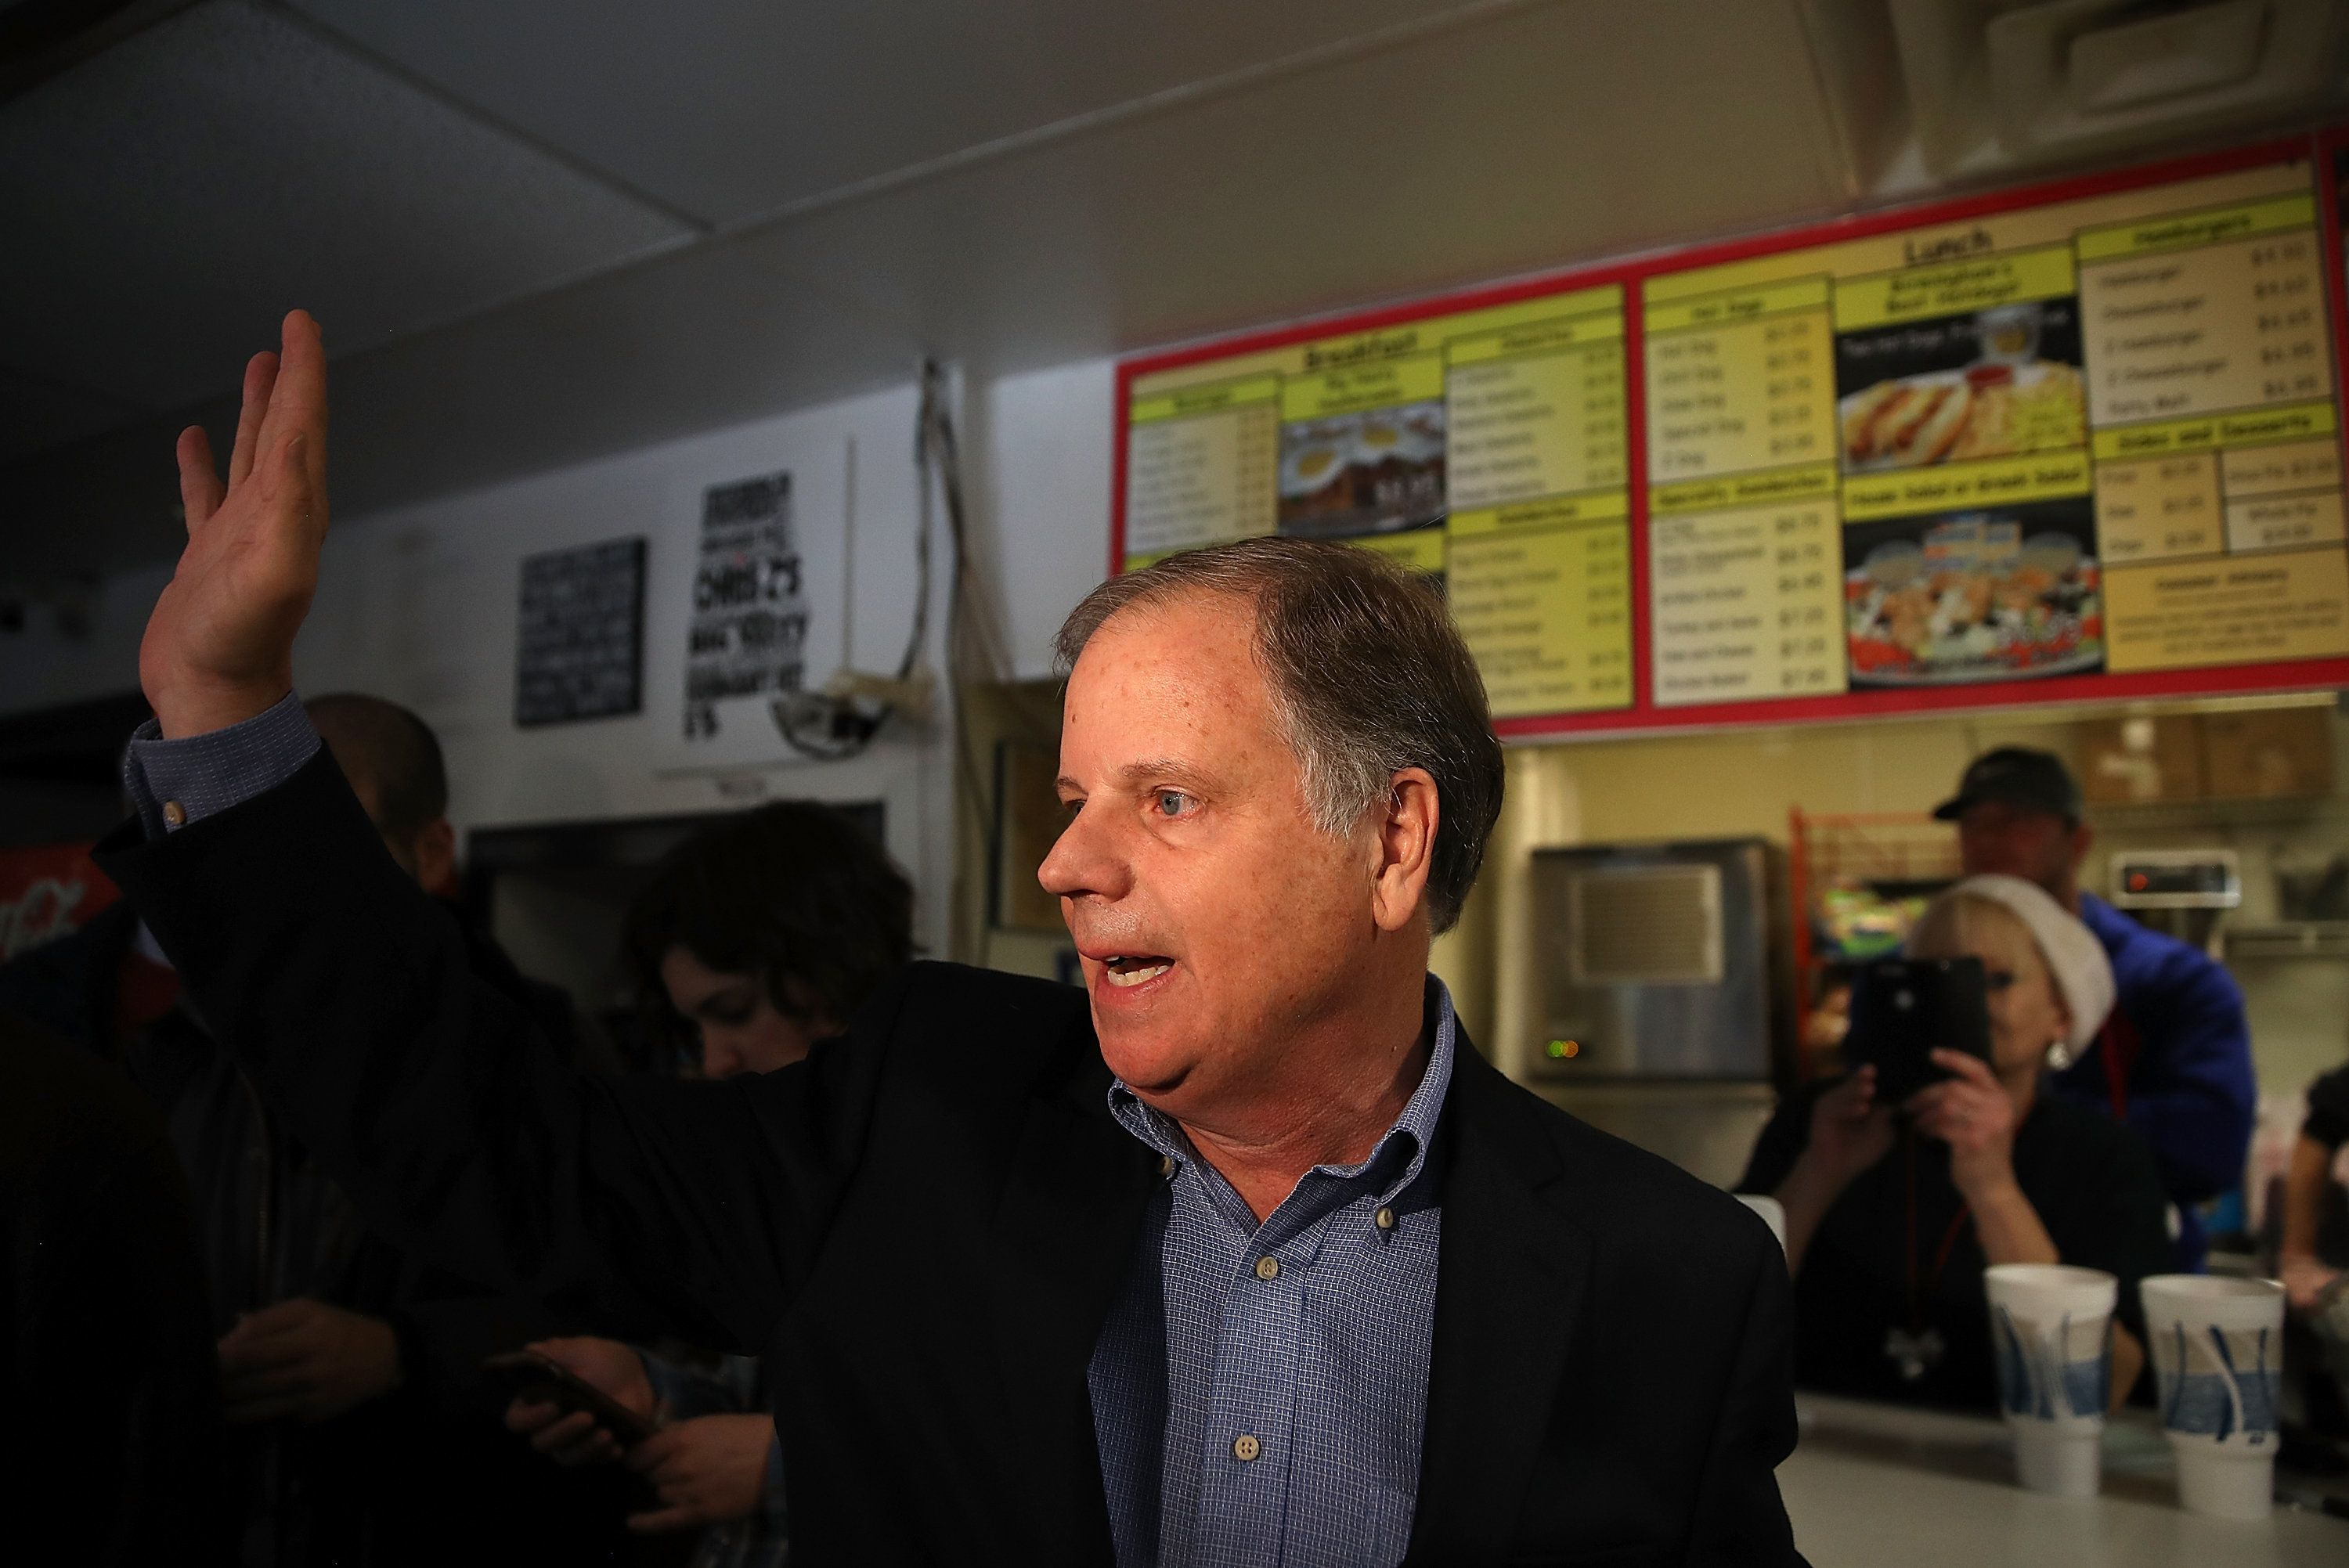 BIRMINGHAM, AL - DECEMBER 11:  Democratic Senatorial candidate Doug Jones waves to reporters as he leaves restaurant Chris Z's during a campaign stop on December 11, 2017 in Birmingham, Alabama. Jones is facing off against Republican Roy Moore in tomorrow's special election for the U.S. Senate. (Photo by Justin Sullivan/Getty Images)